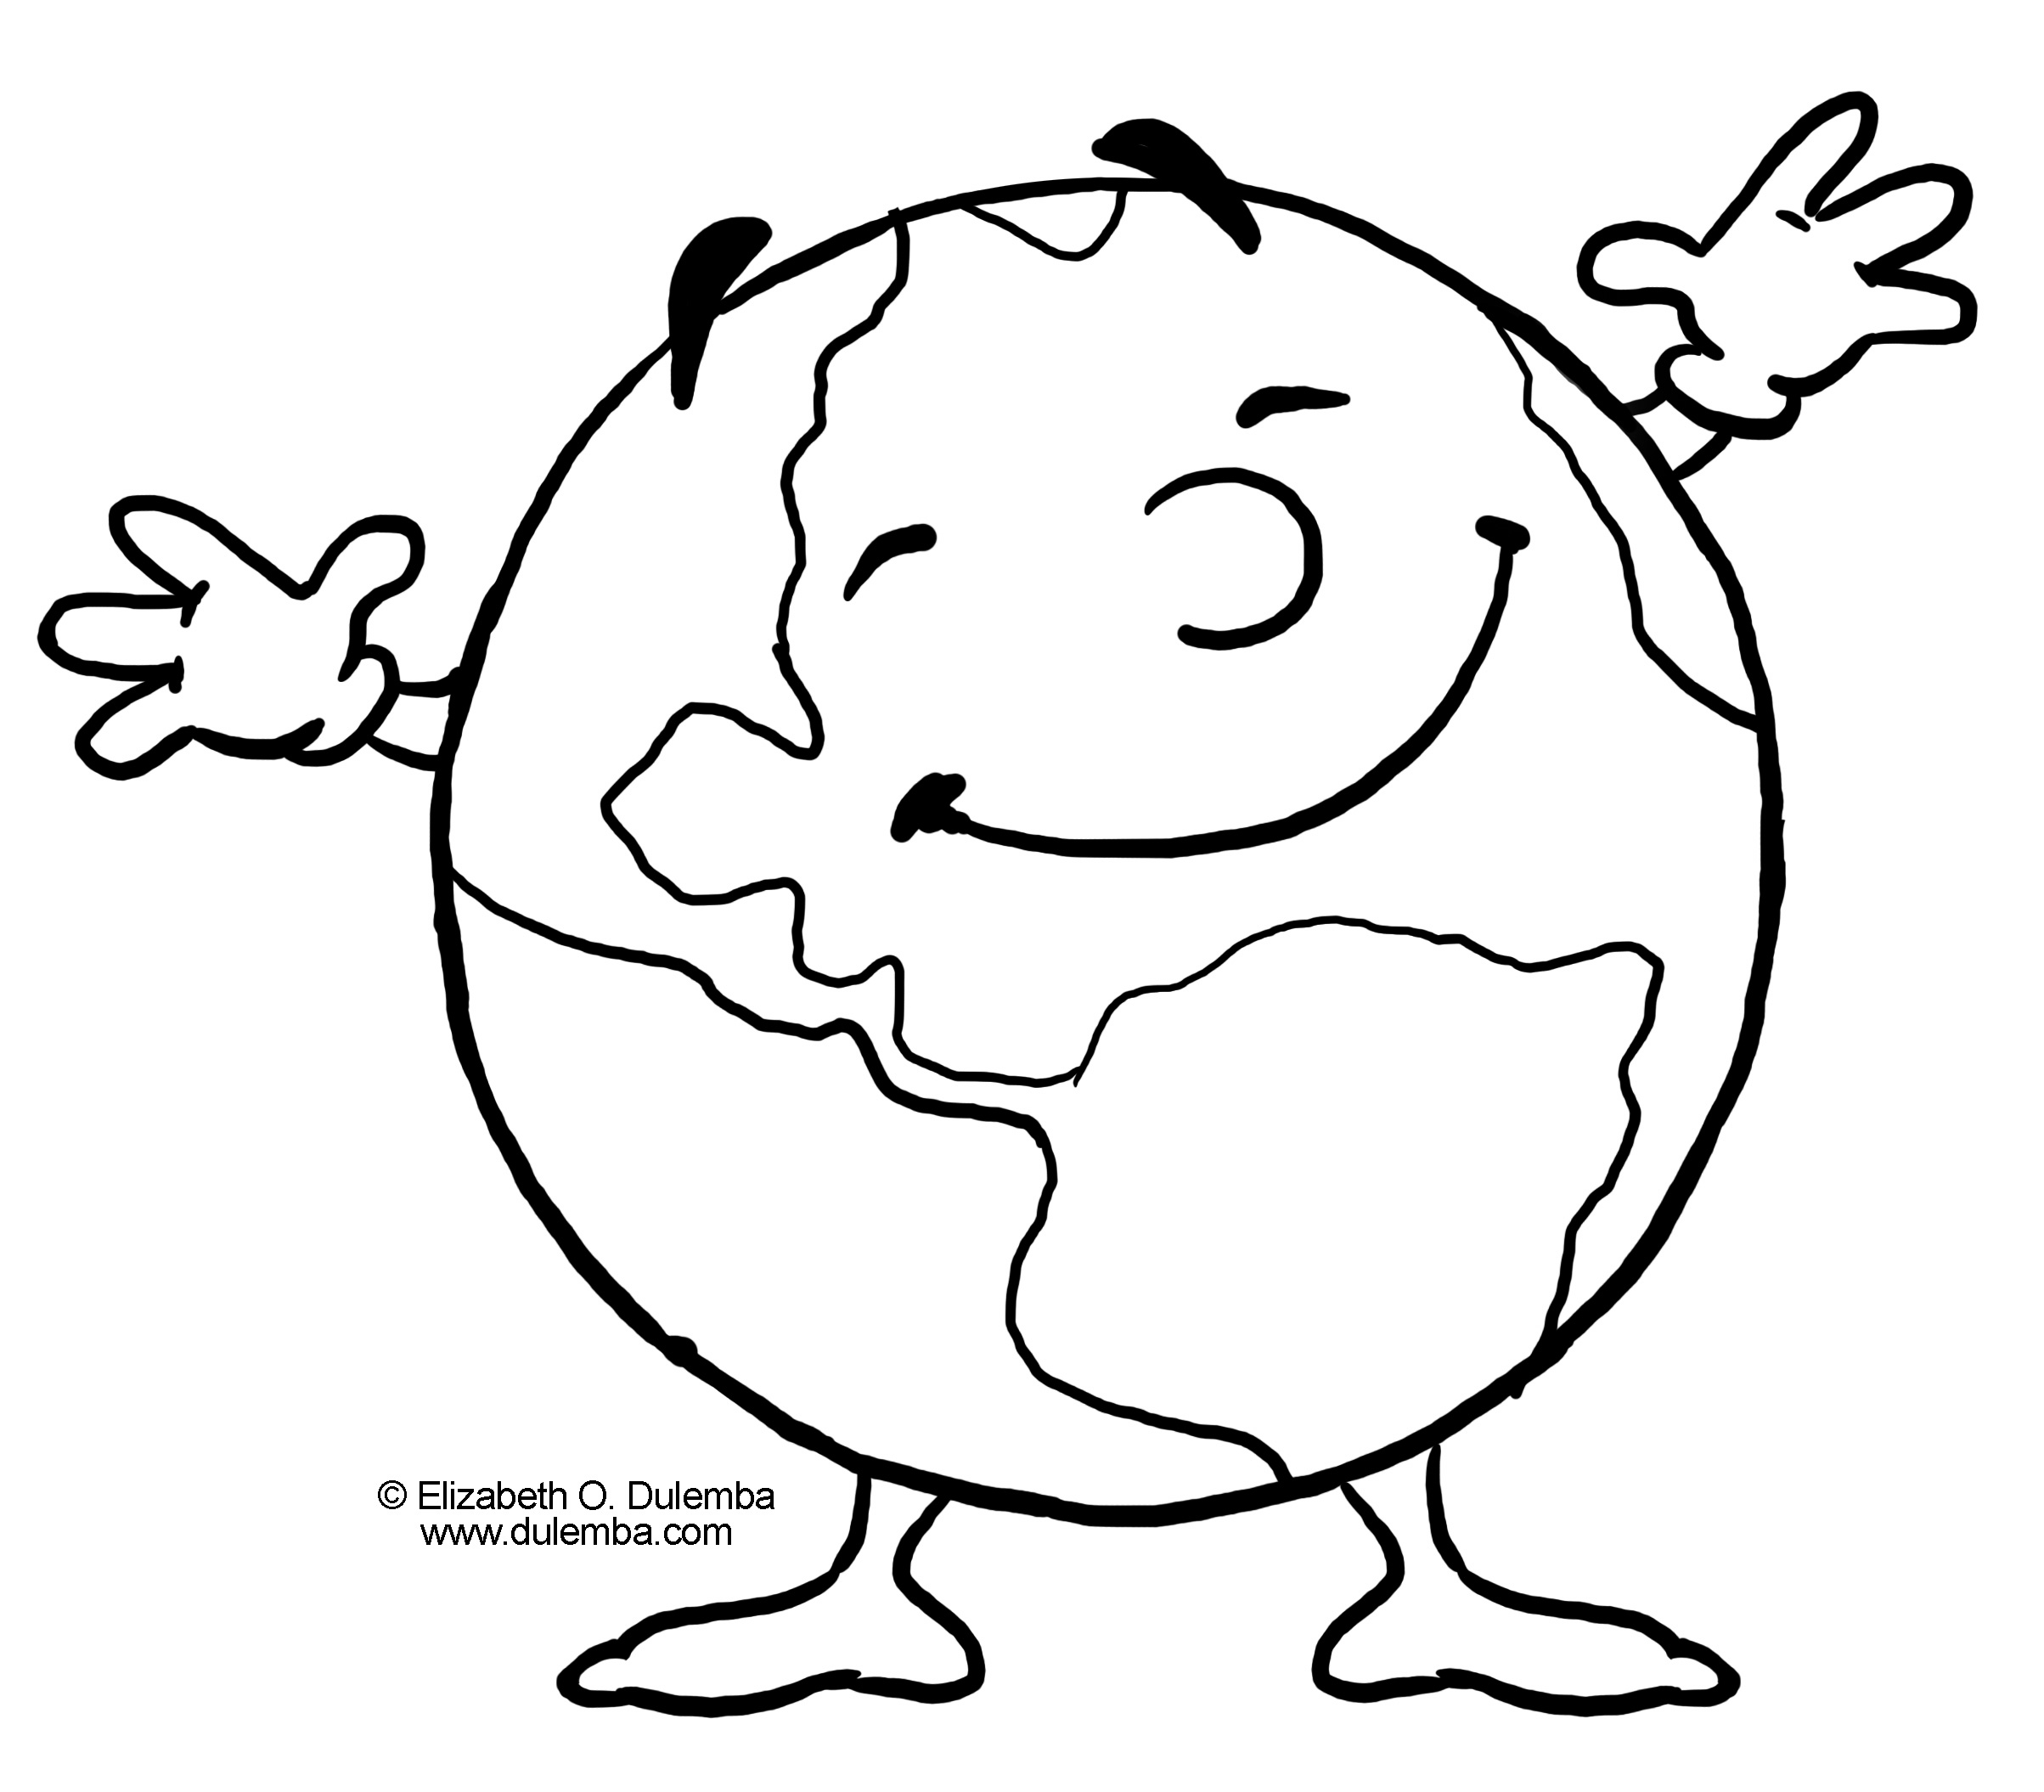 Earth day coloring pages clipart clip free download Earth Day Coloring Pages | Clipart Panda - Free Clipart Images clip free download